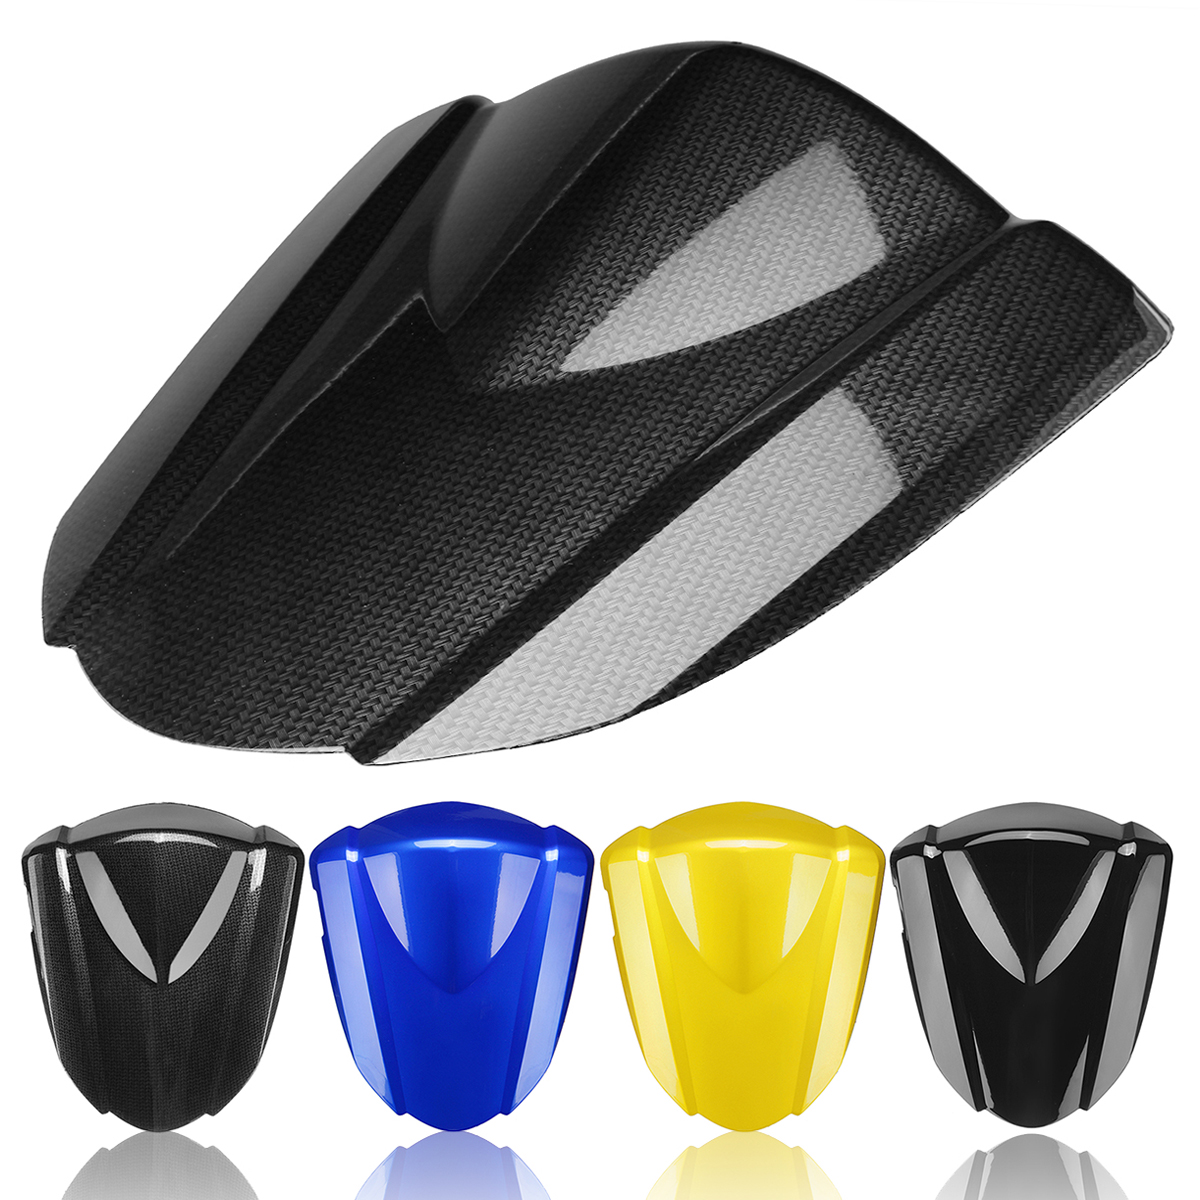 Motorcycle Rear Pillion Seat Cowl Fairing Cover For Suzuki GSXR1000 2007-2008